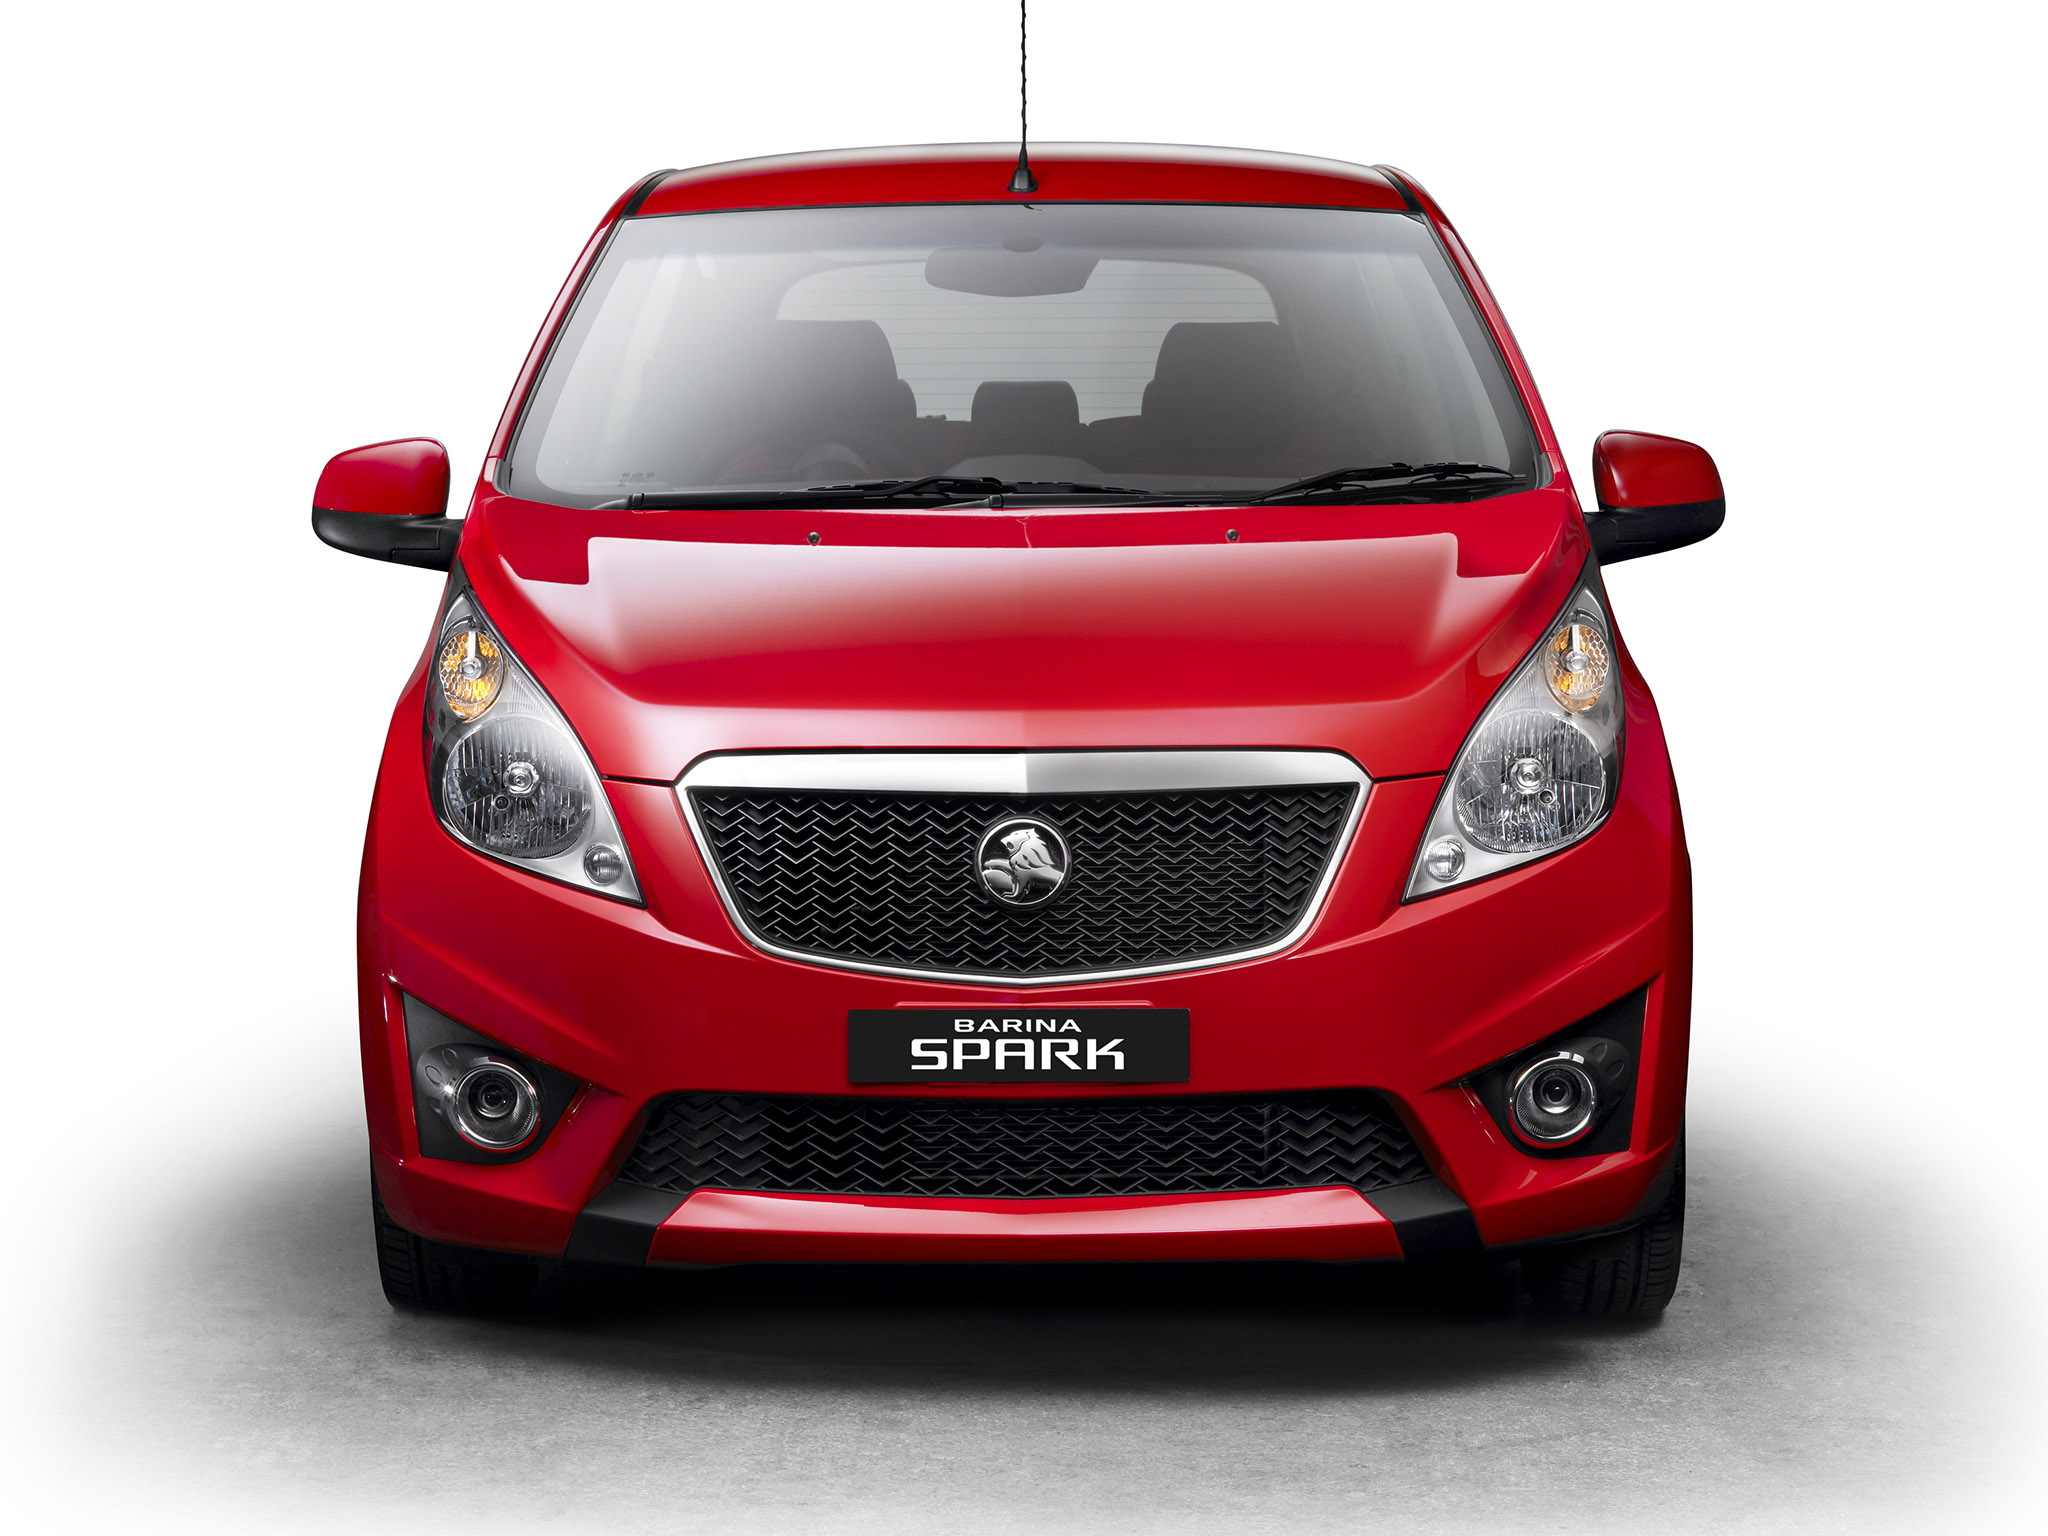 Holden Barina Spark 2010 Holden Barina Spark 2010 Photo 06 Car In Pictures Car Photo Gallery